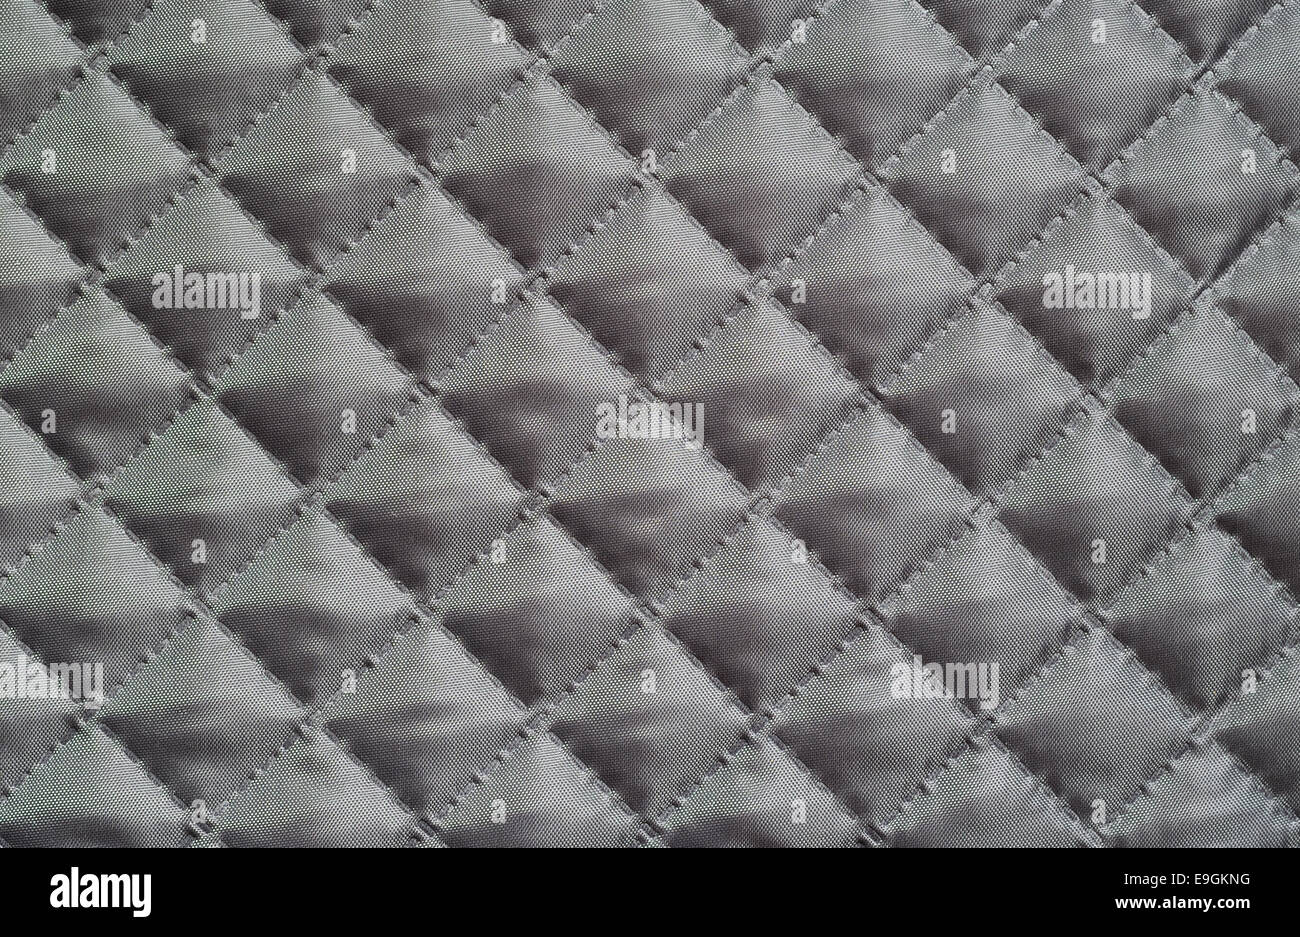 Quilted Fabric Gray Silk Quilted Fabric For Background Stock Photo 74740108 Alamy